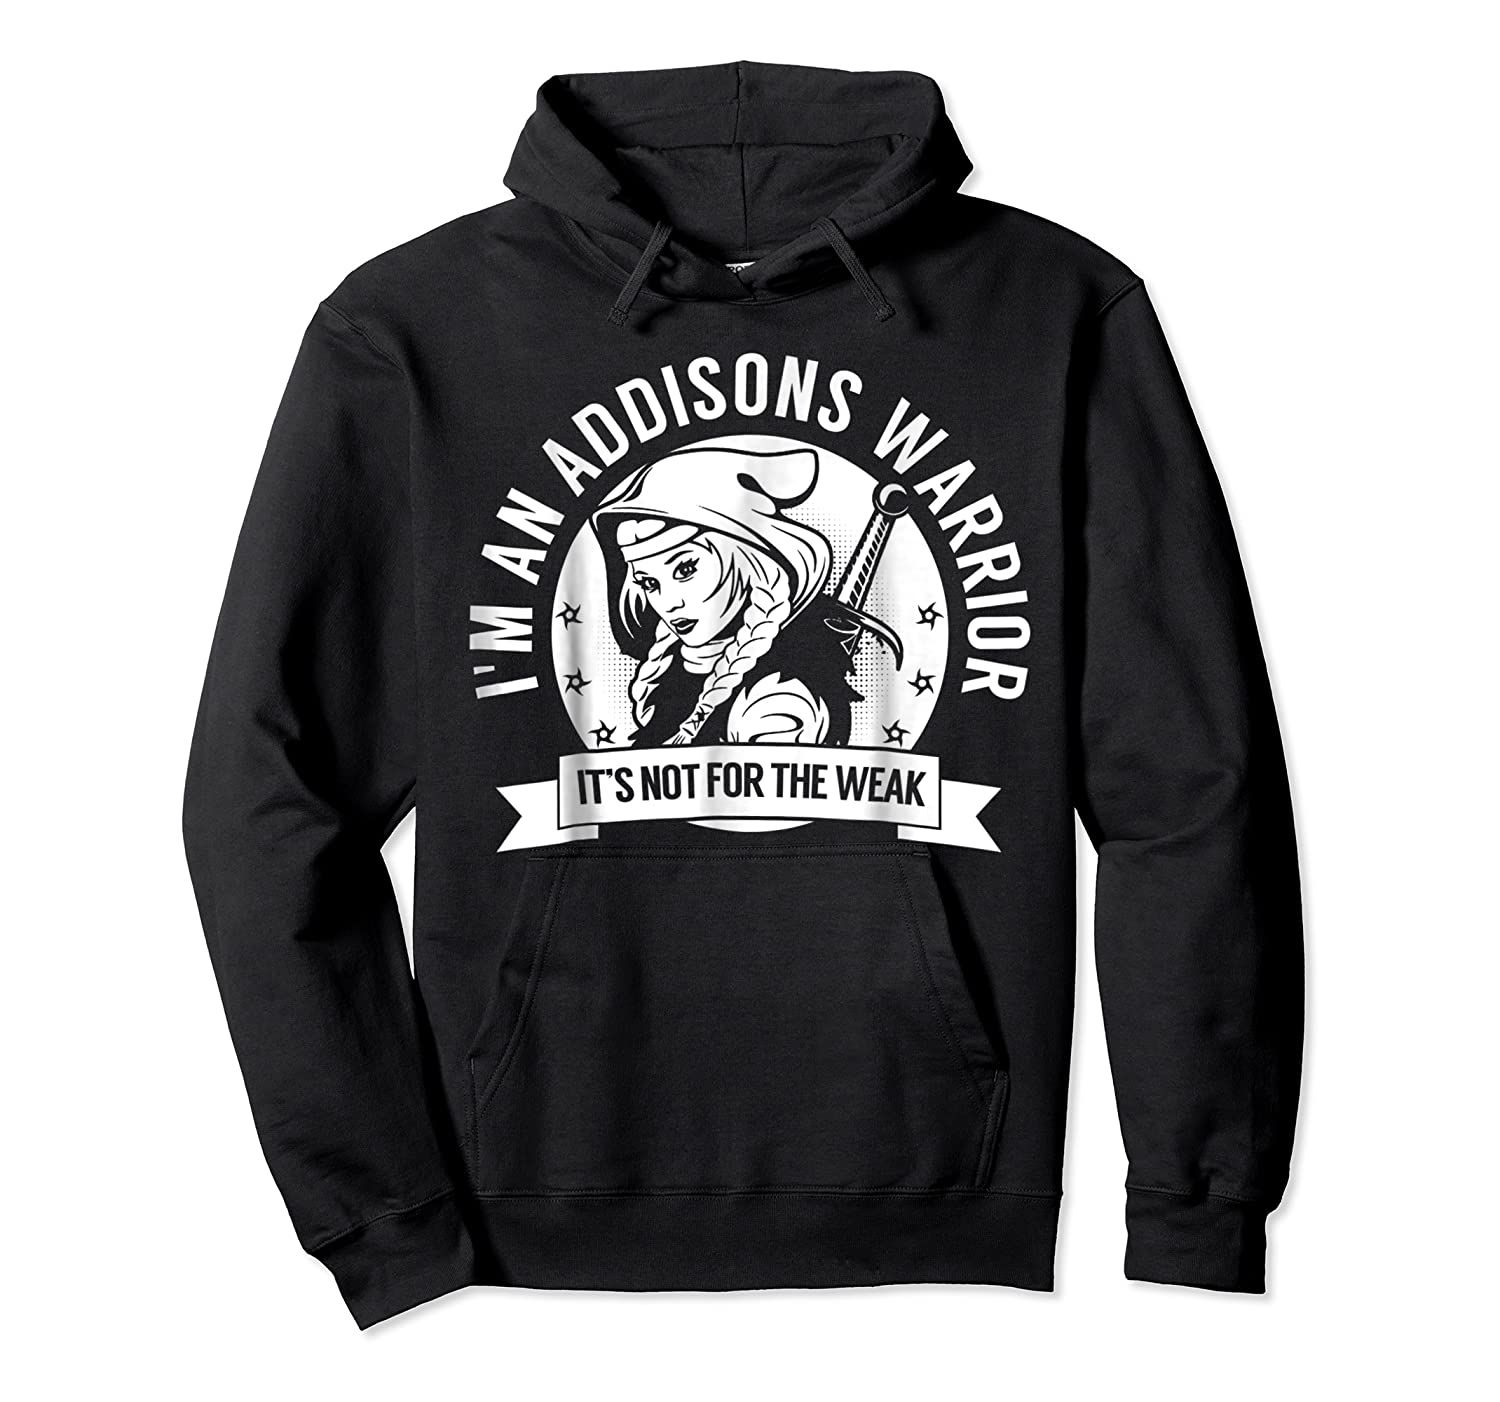 Addisons Hooded Warrior T-shirt- Addisons Disease Awareness Unisex Pullover Hoodie